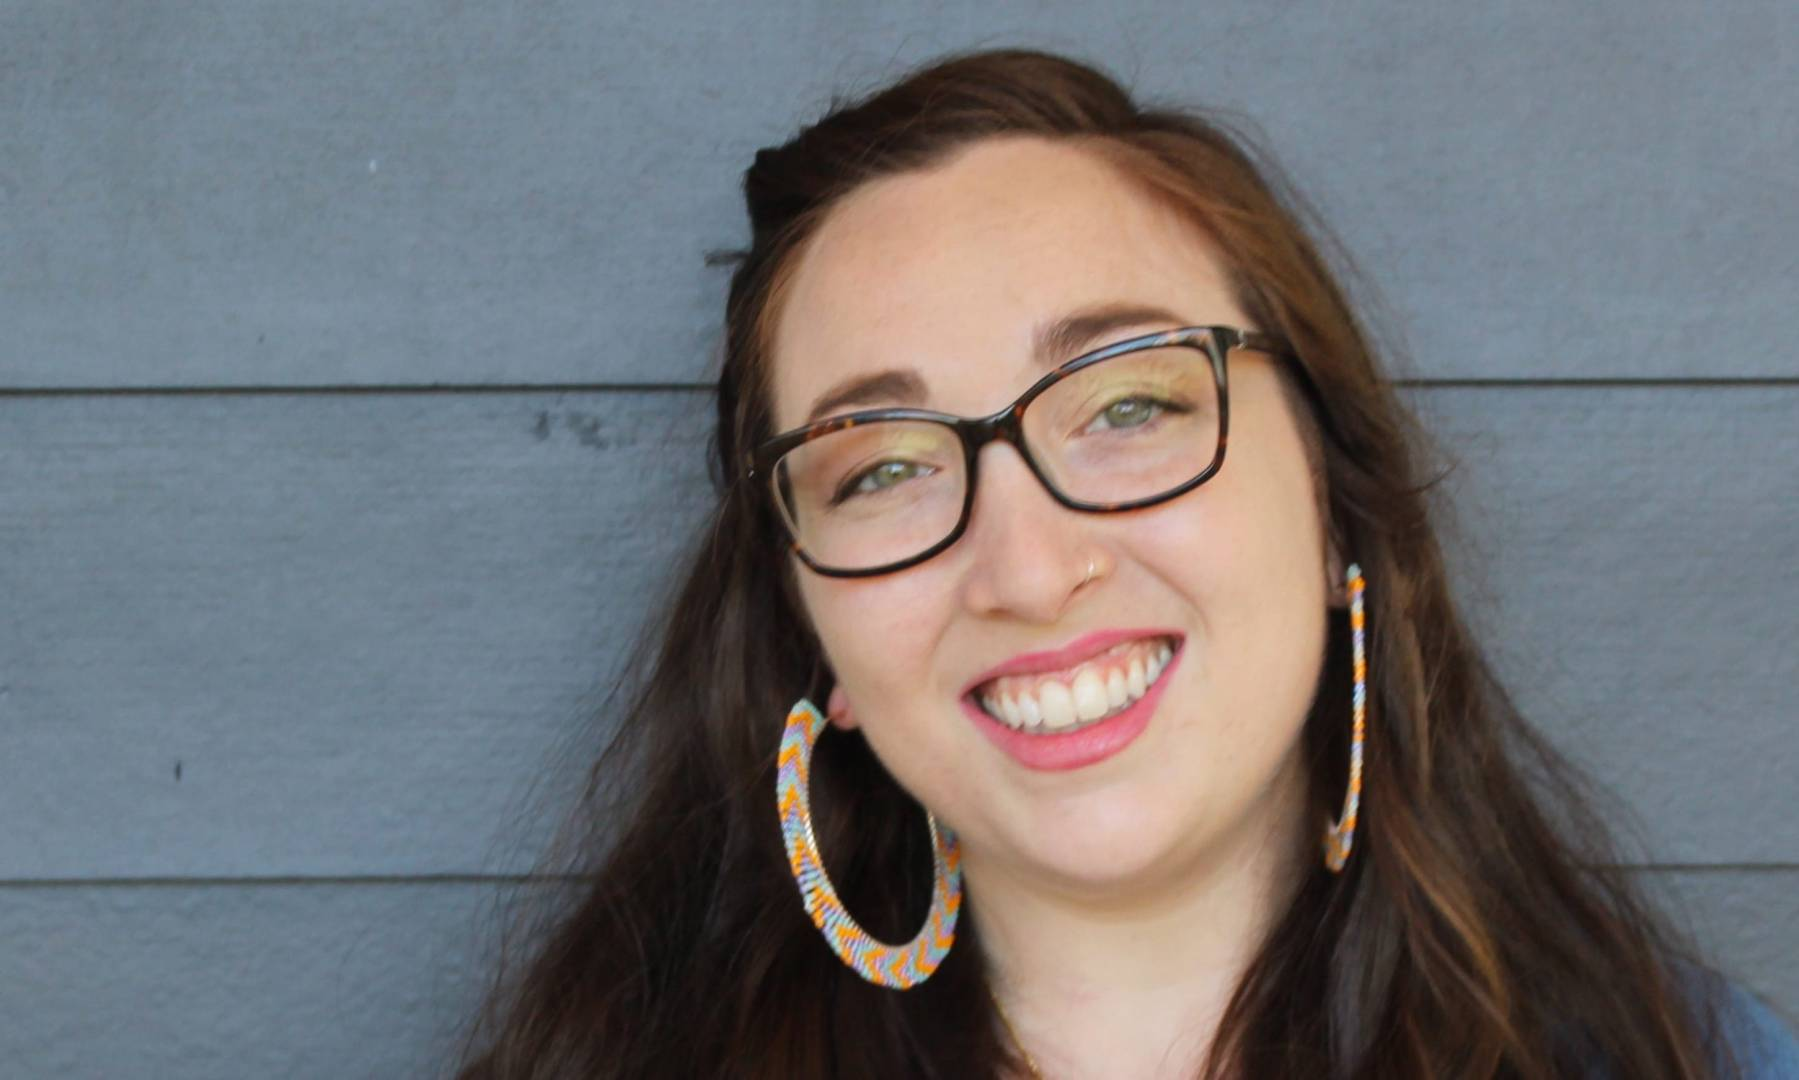 A pale white woman with brown hair, green eyes, and tortoiseshell glasses leans against the blue siding of a house, looking at the camera and smiling. She is in a blue, denim shirt and has on large blue and yellow beaded hoop earrings and a black and gold Magen David necklace.